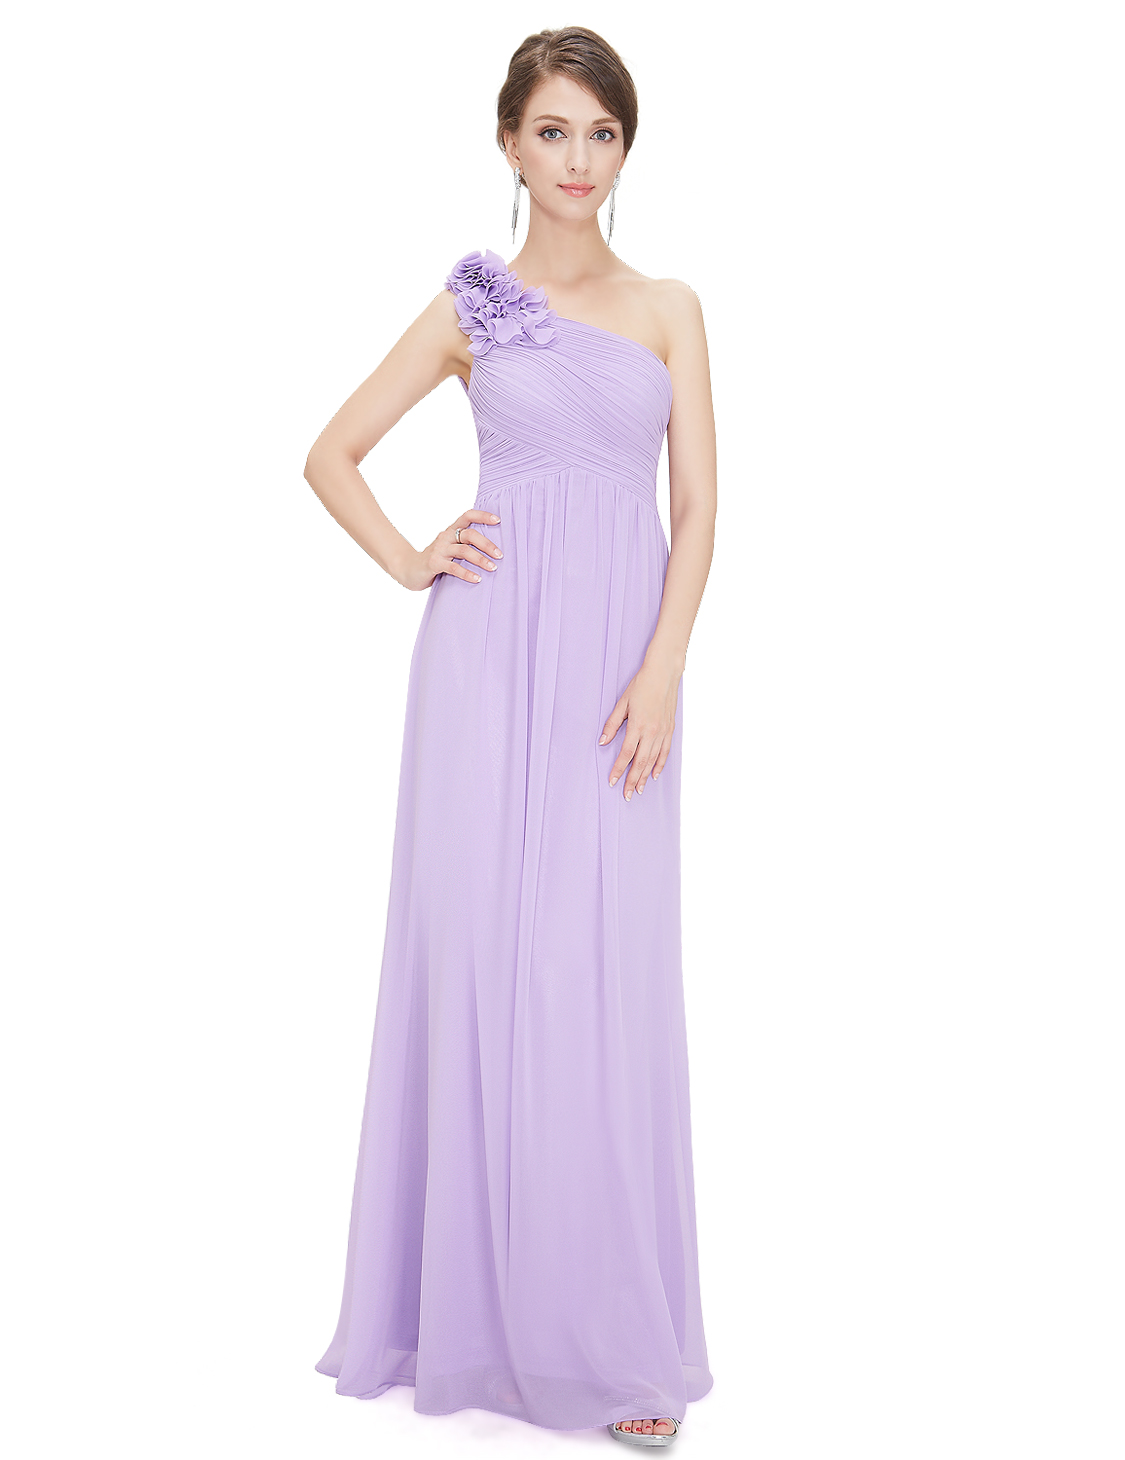 Cheap long evening dresses & gowns are on offer at teraisompcz8d.ga You'll be satisfied with affordable evening dresses like plus size evening dresses, long evening dresses, etc. Discount.